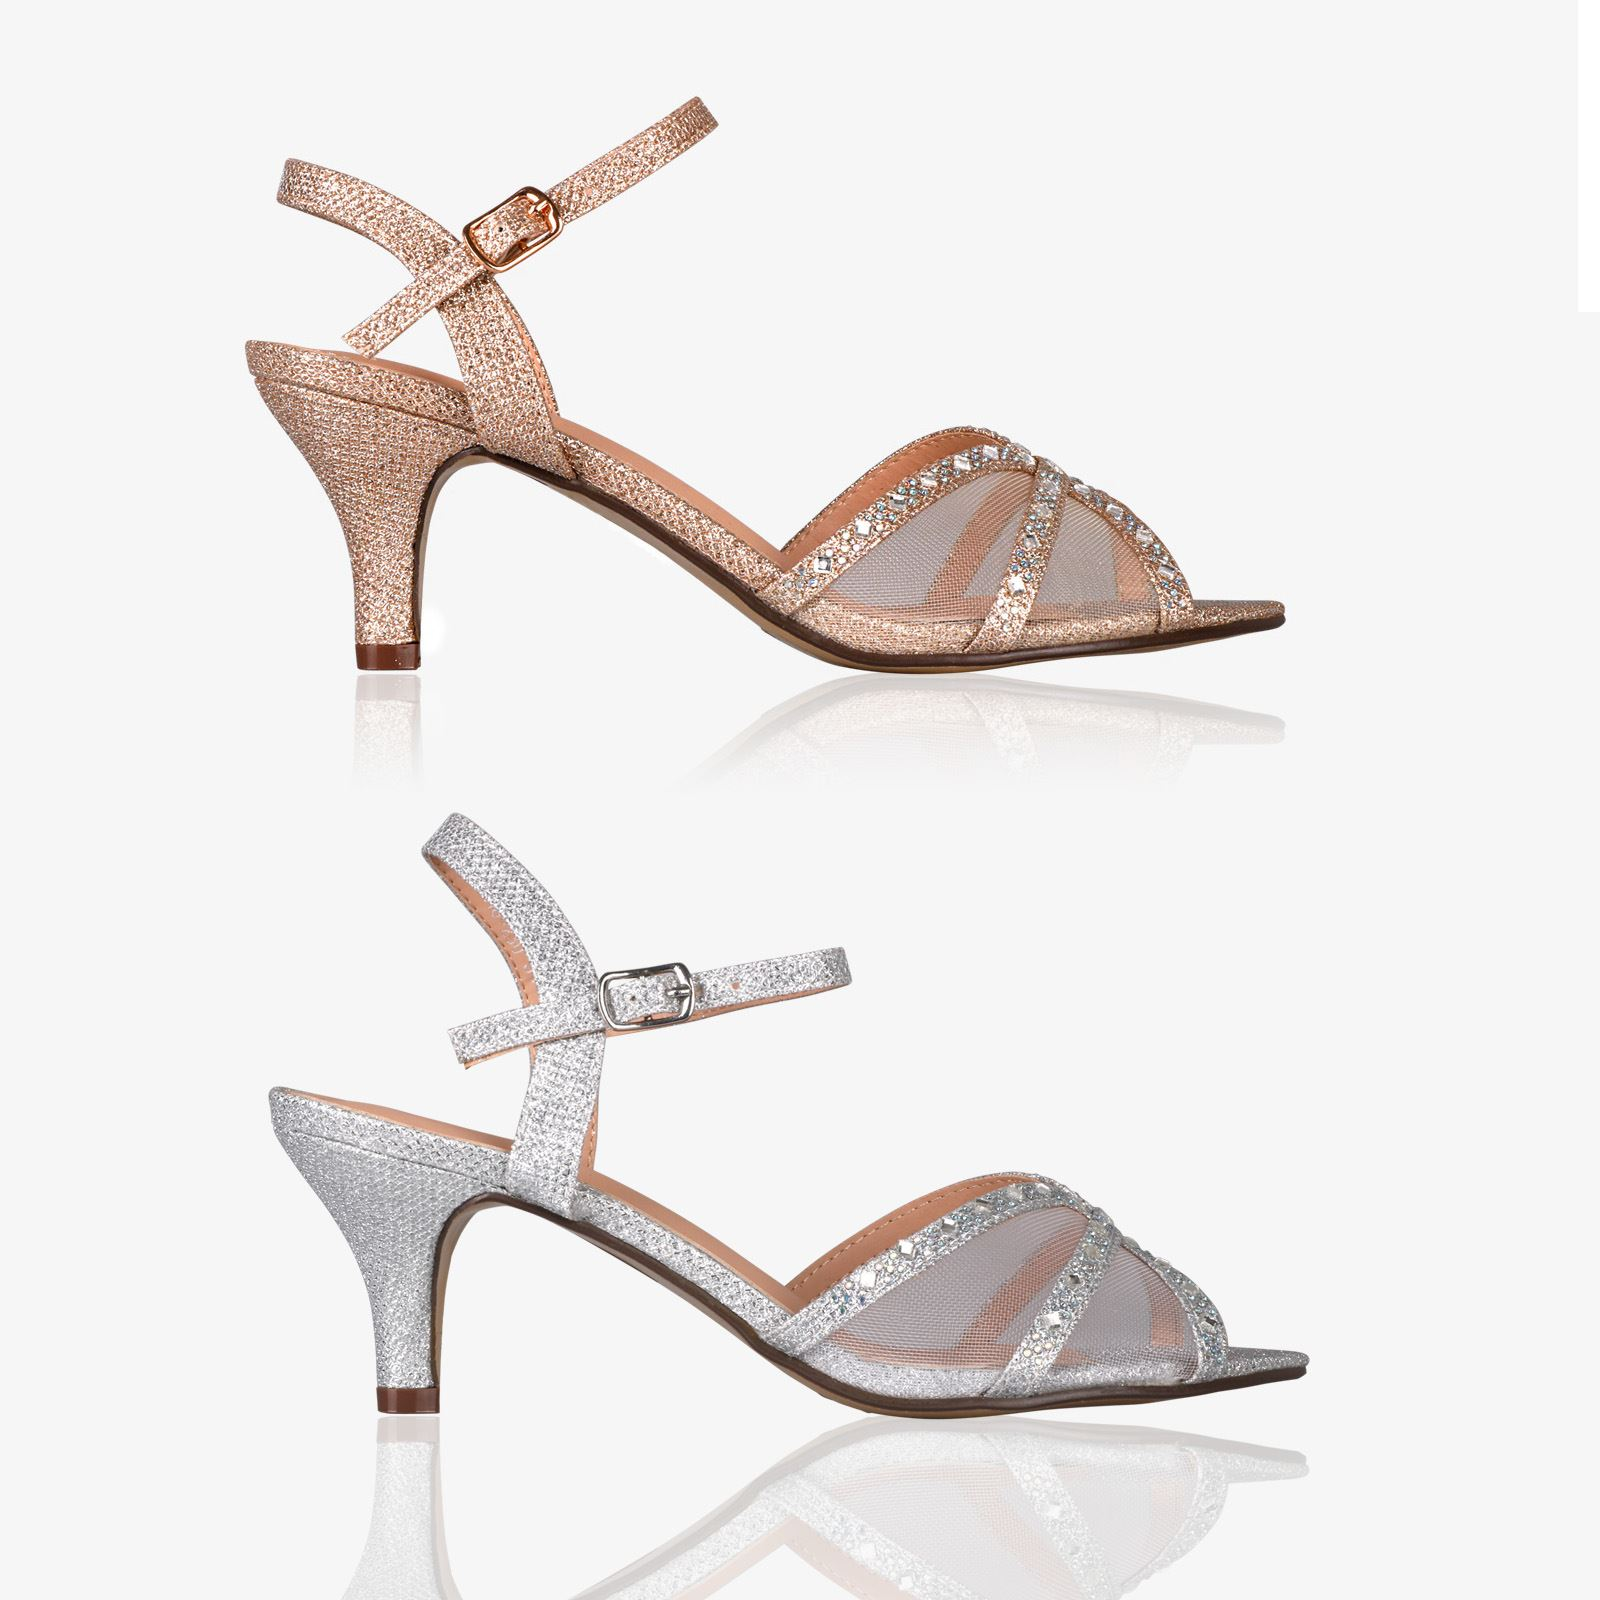 adc34035e83 Details about Womens Ladies Glitter Kitten Mid Heel Sandals Open Toe  Strappy Court Shoes Party